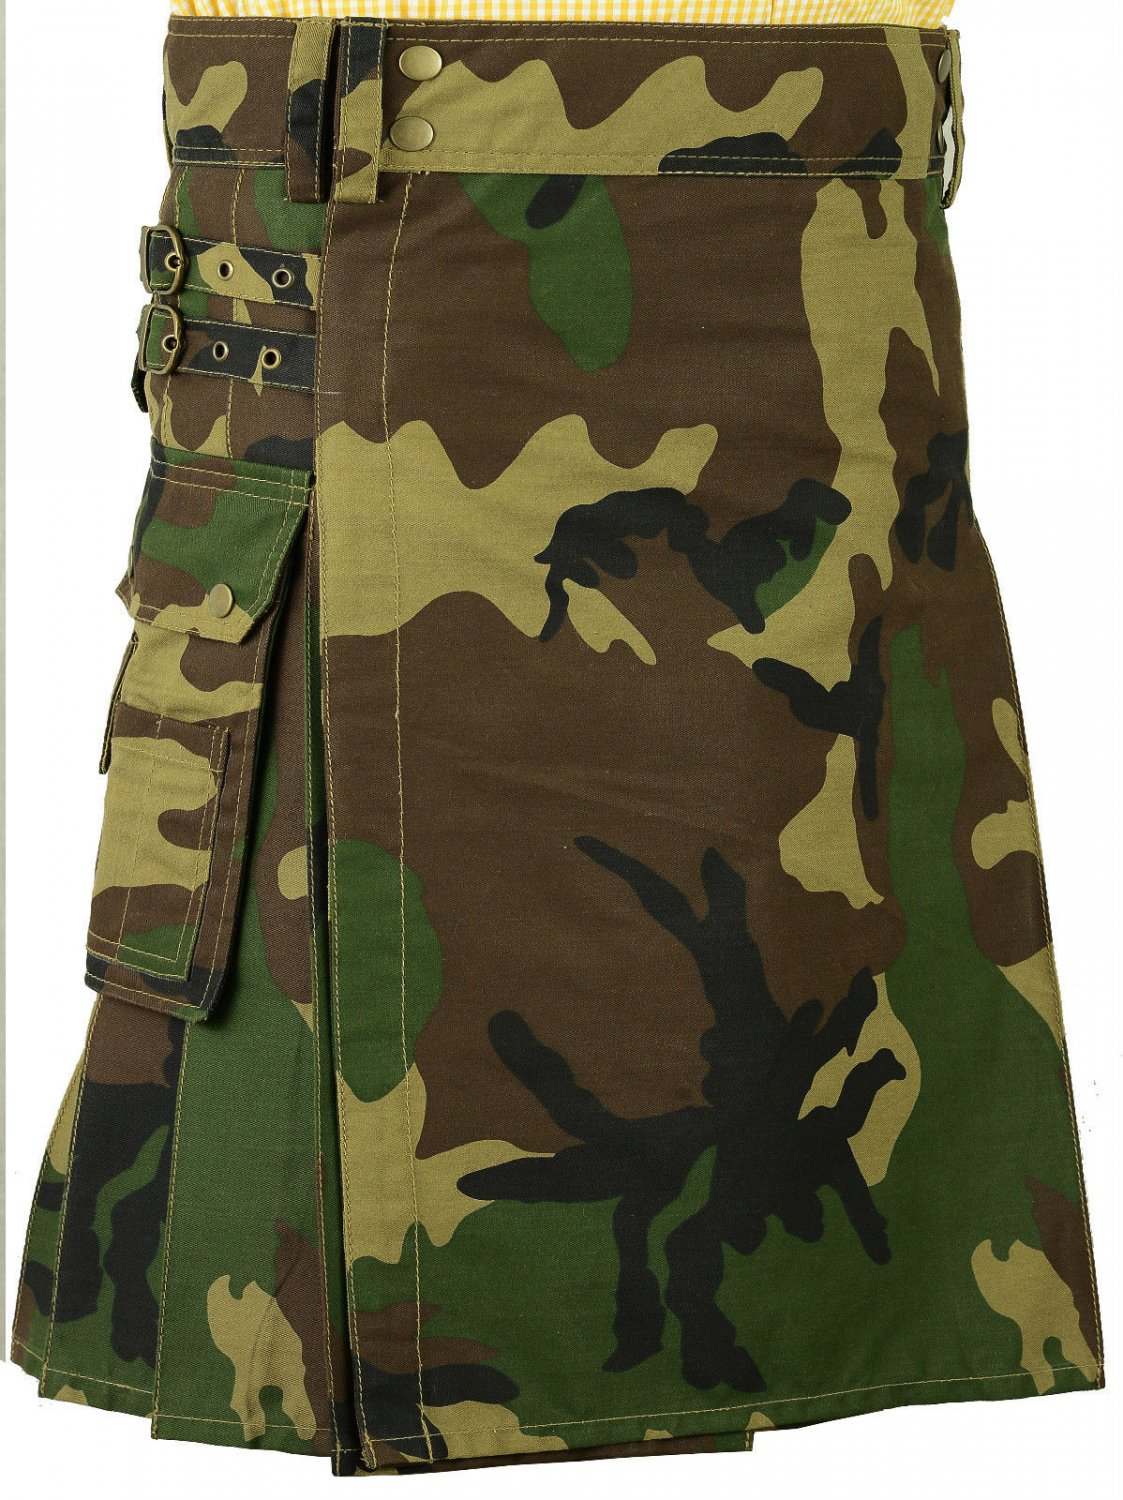 Size 32 Army Camouflage Utility Cotton  Deluxe Kilt  with Big Pockets